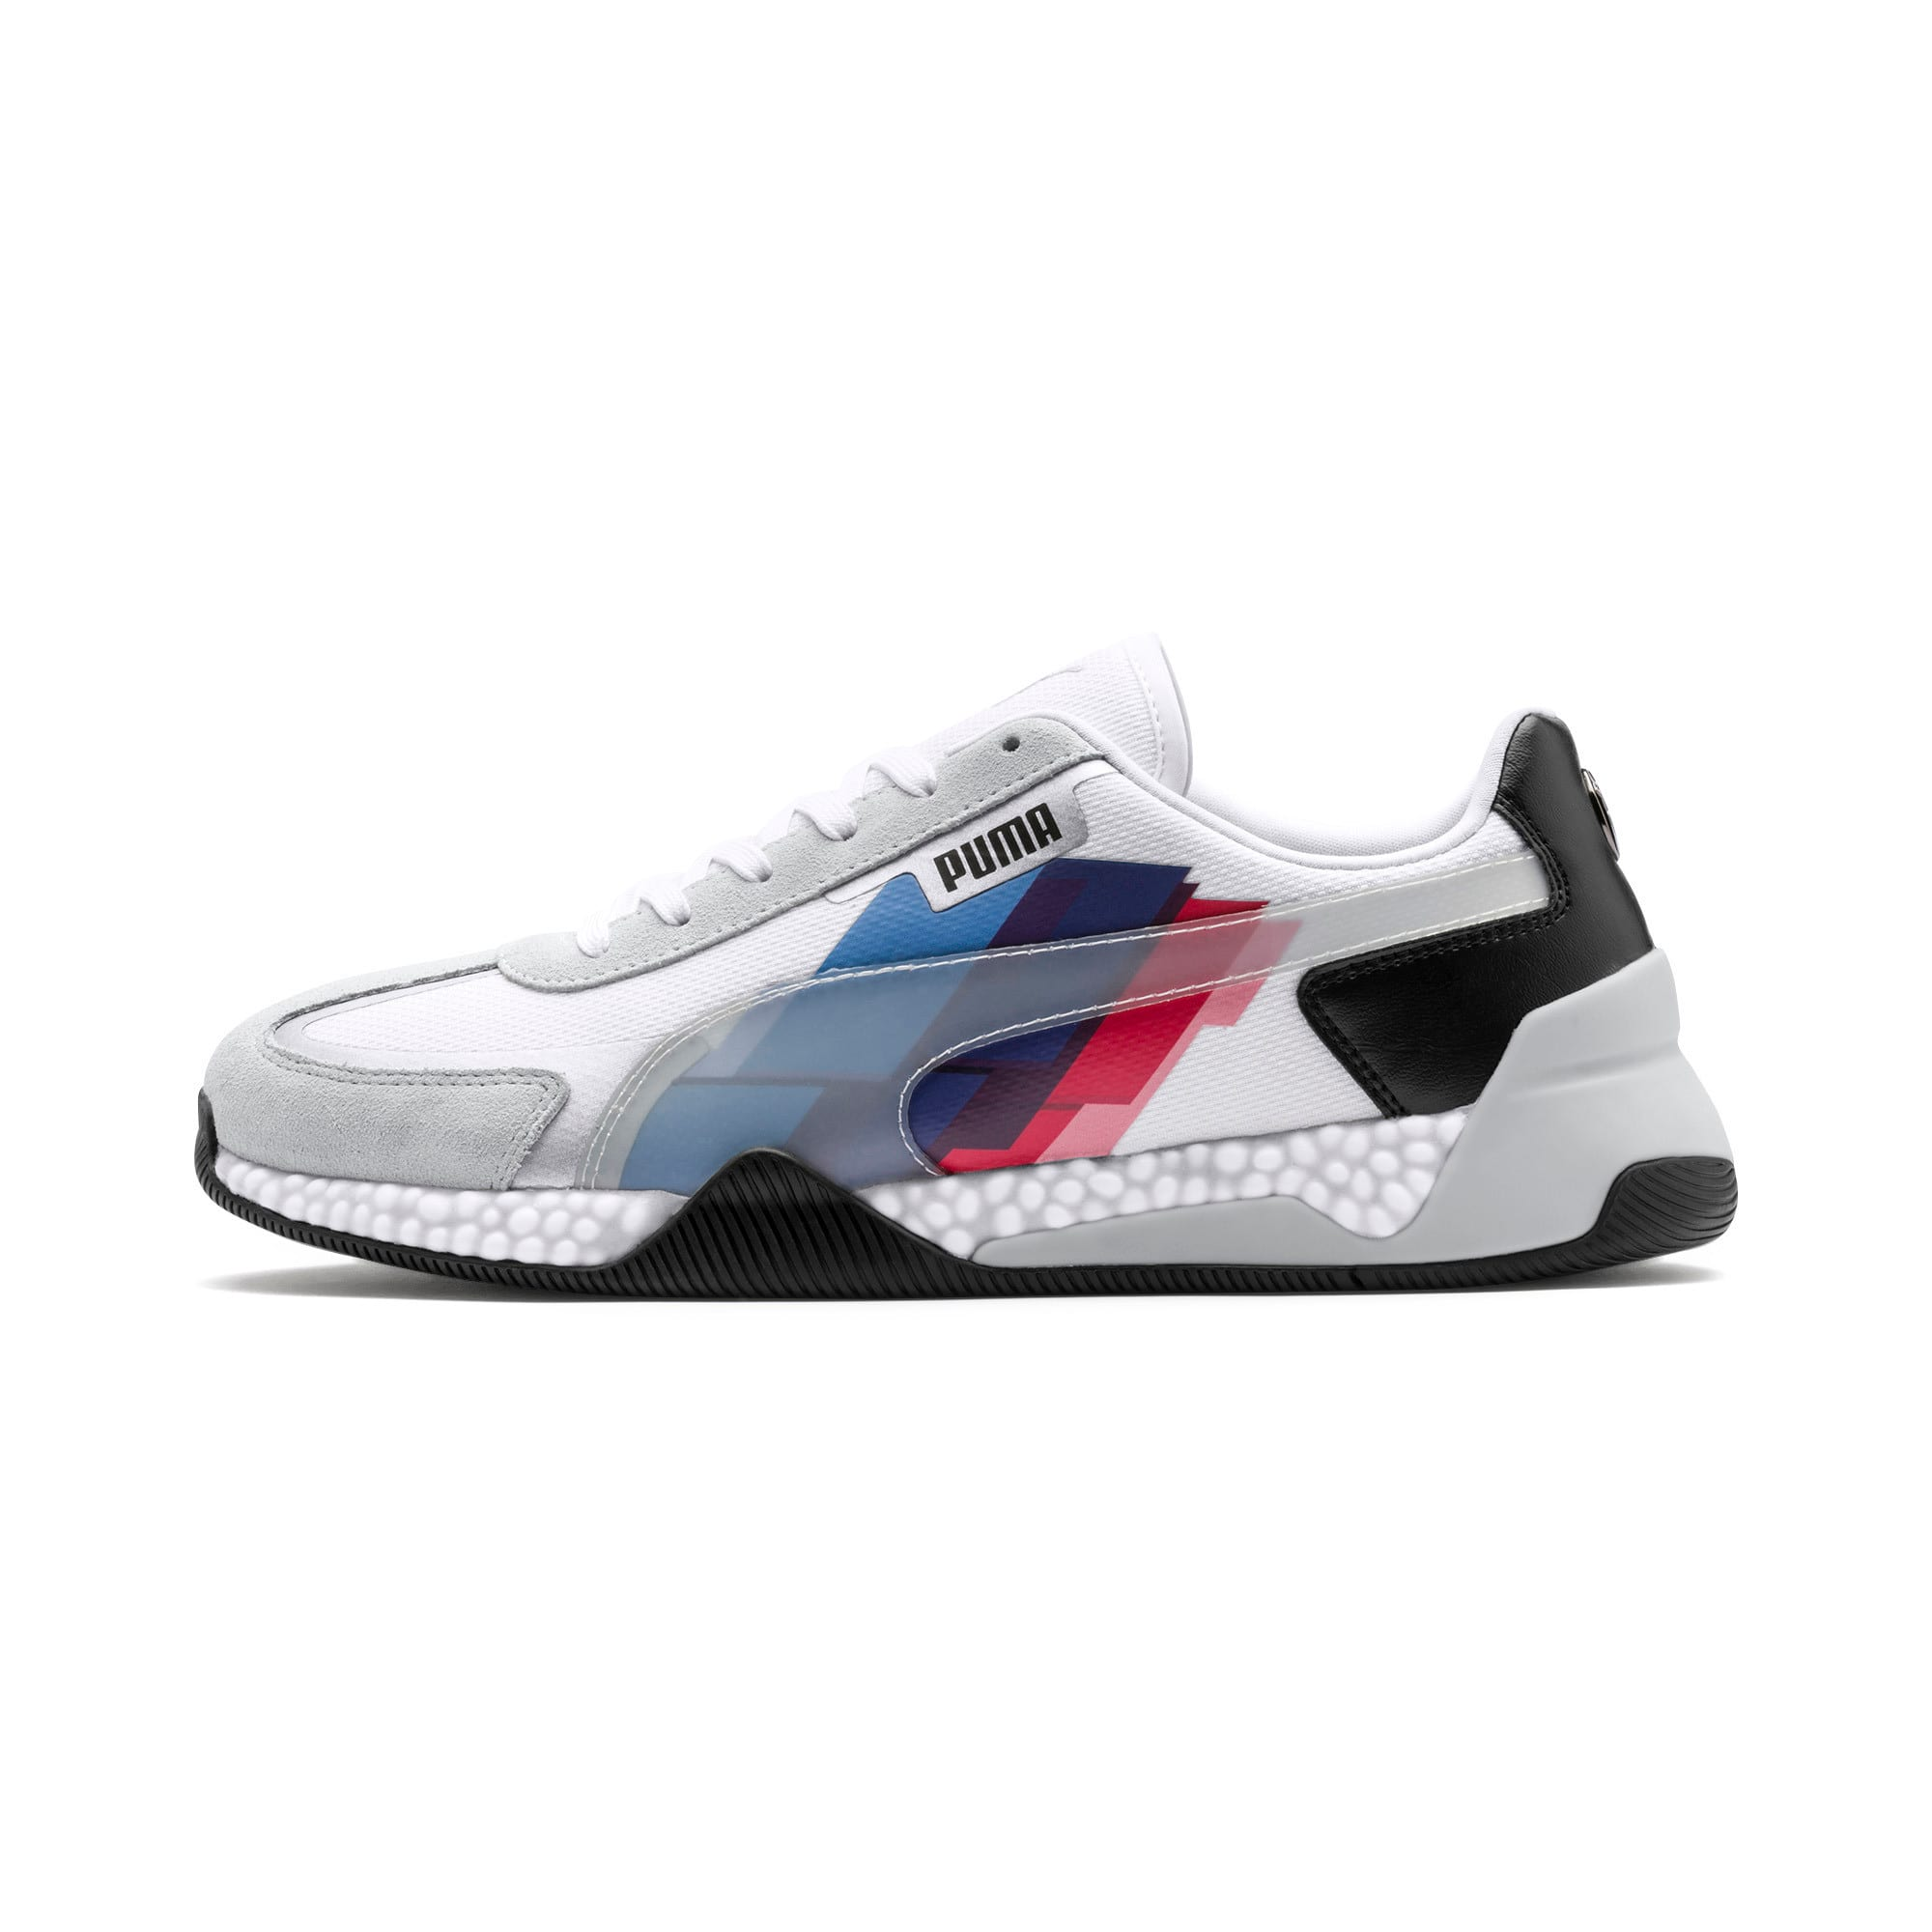 Thumbnail 1 of BMW M Motorsport Speed HYBRID Sneaker, White-Glacier Gray-Black, medium